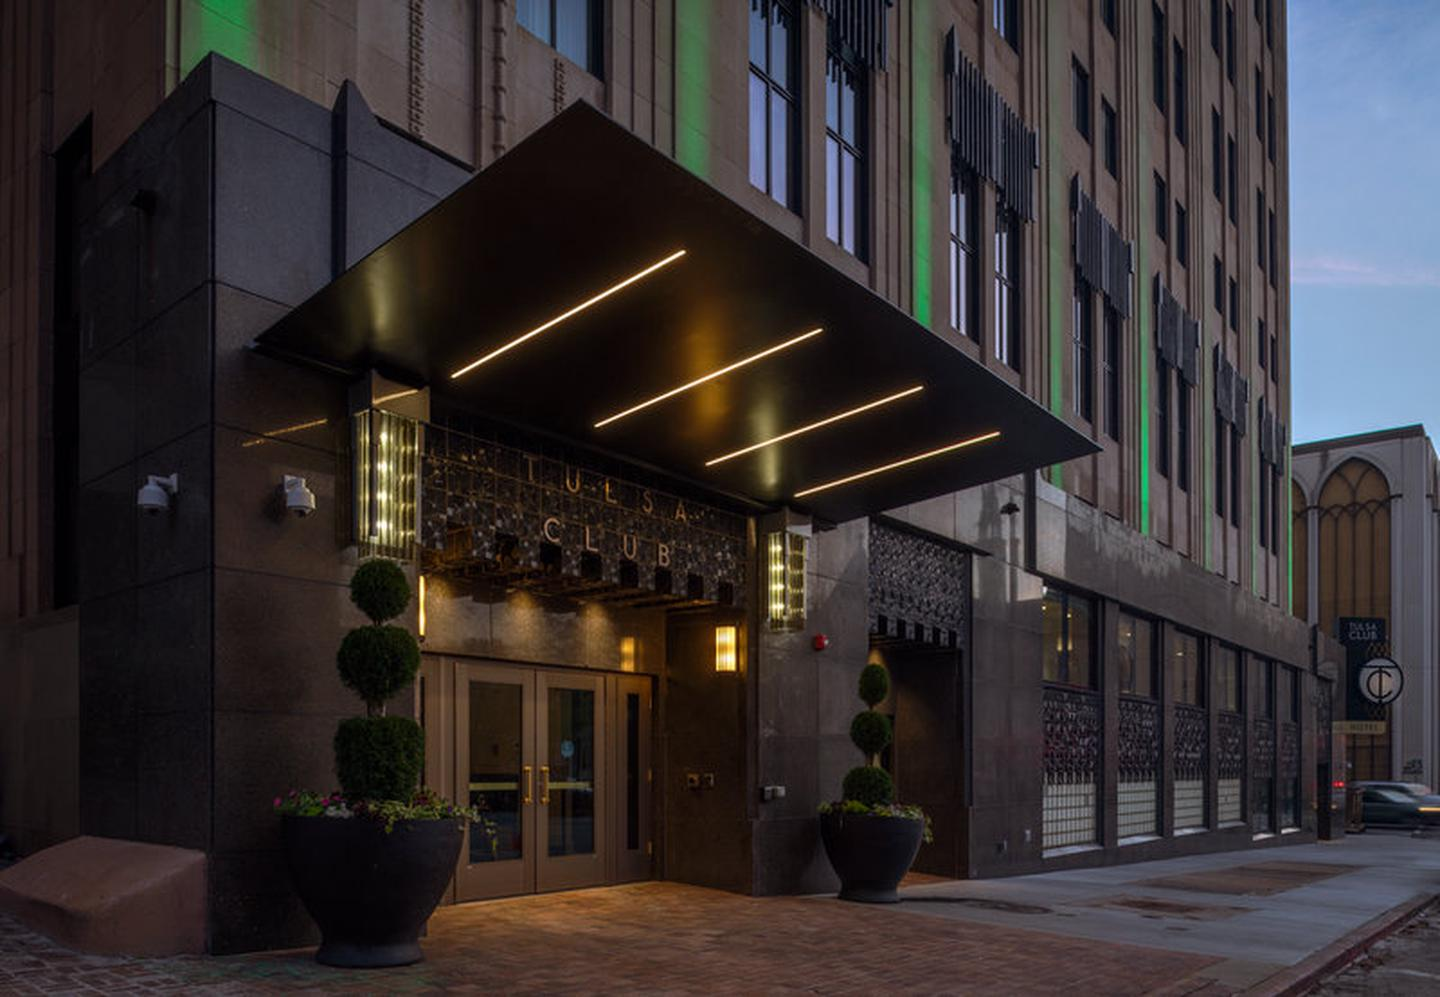 Tulsa Club Hotel, Curio Collection by Hilton